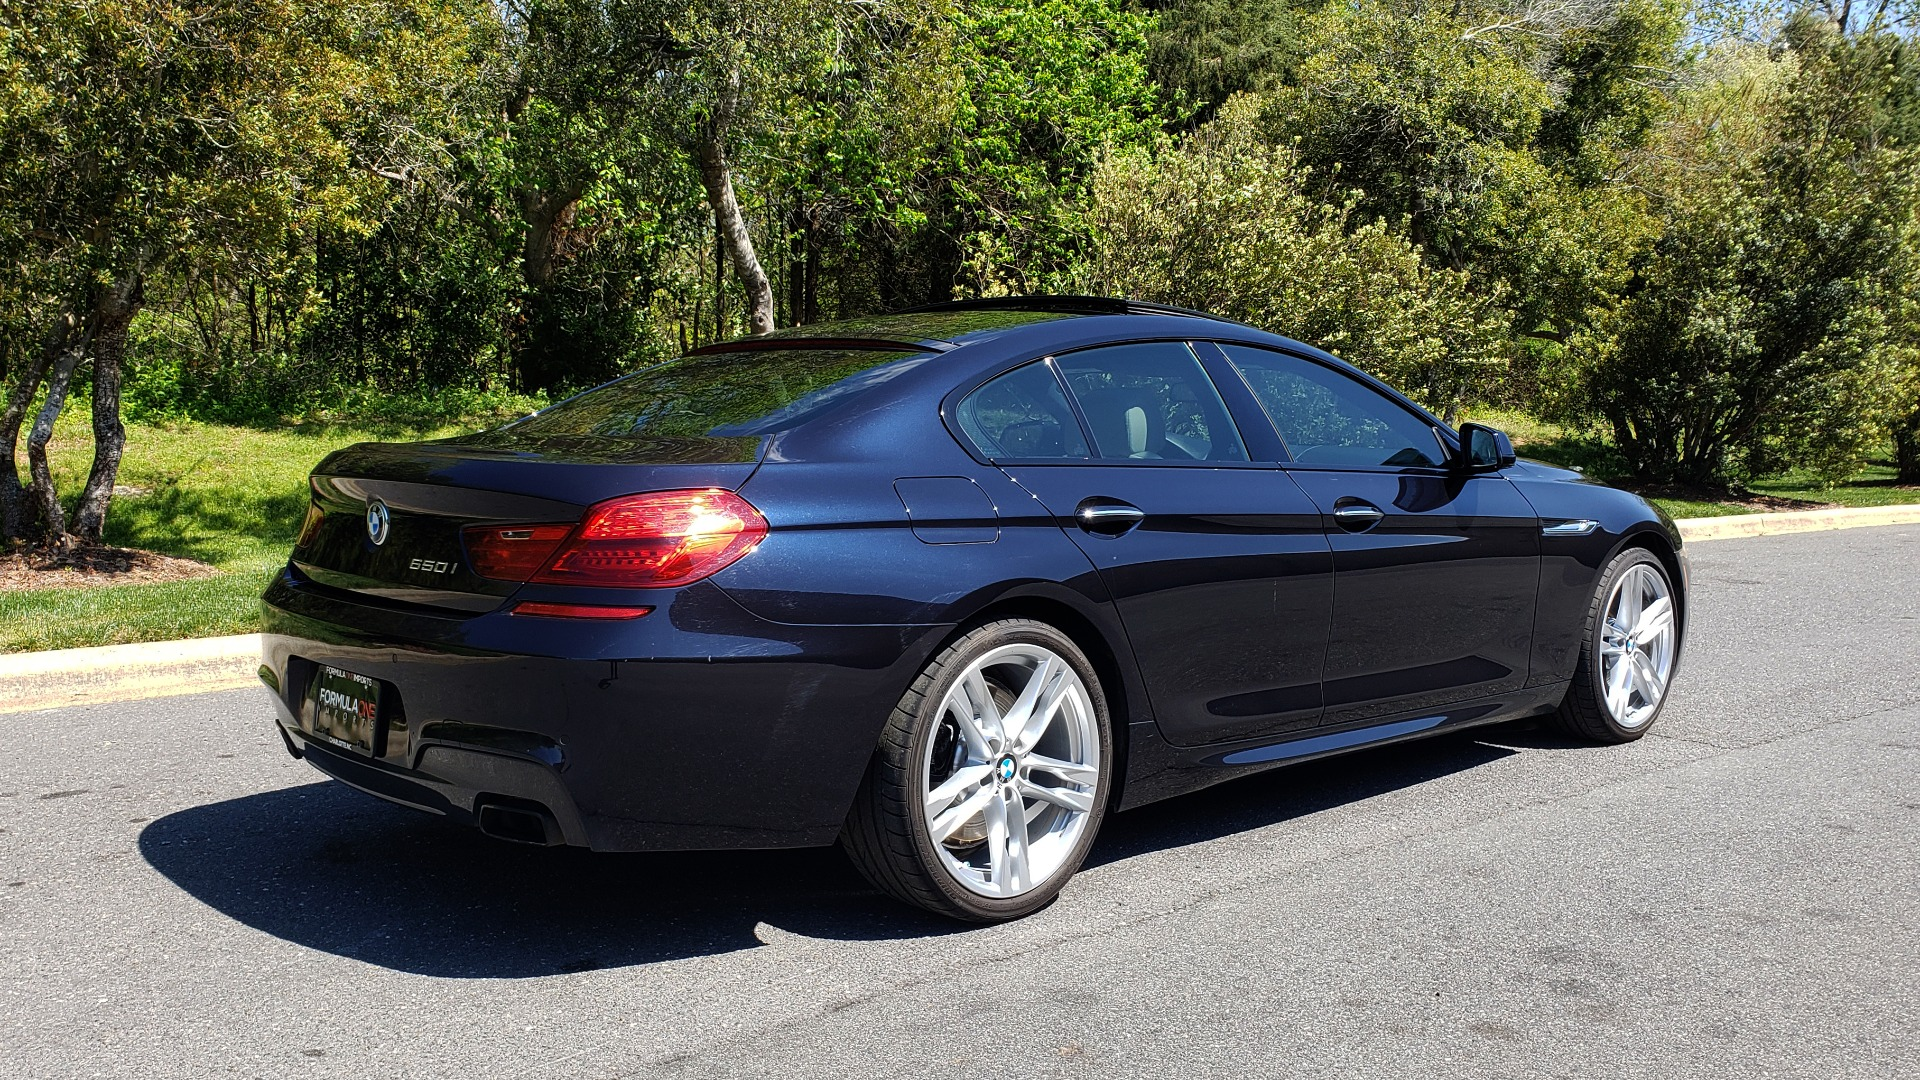 Used 2015 BMW 6 SERIES 650I GRANCOUPE M-SPORT / EXEC / DRVR ASST PLUS / LIGHTING for sale Sold at Formula Imports in Charlotte NC 28227 6